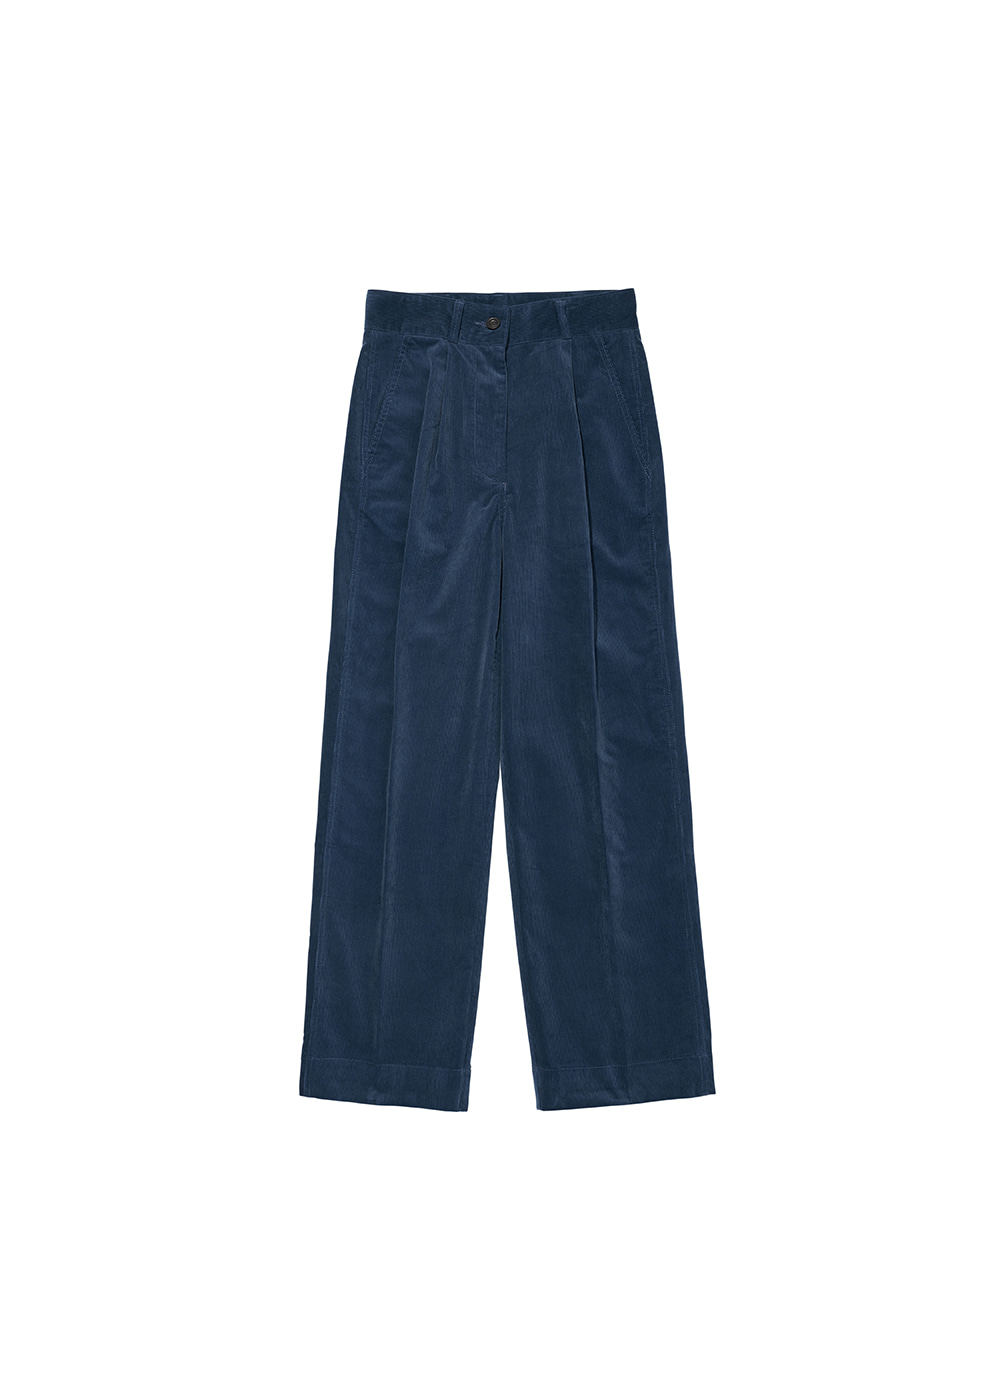 CHARMS CORDUROY PANTS BL